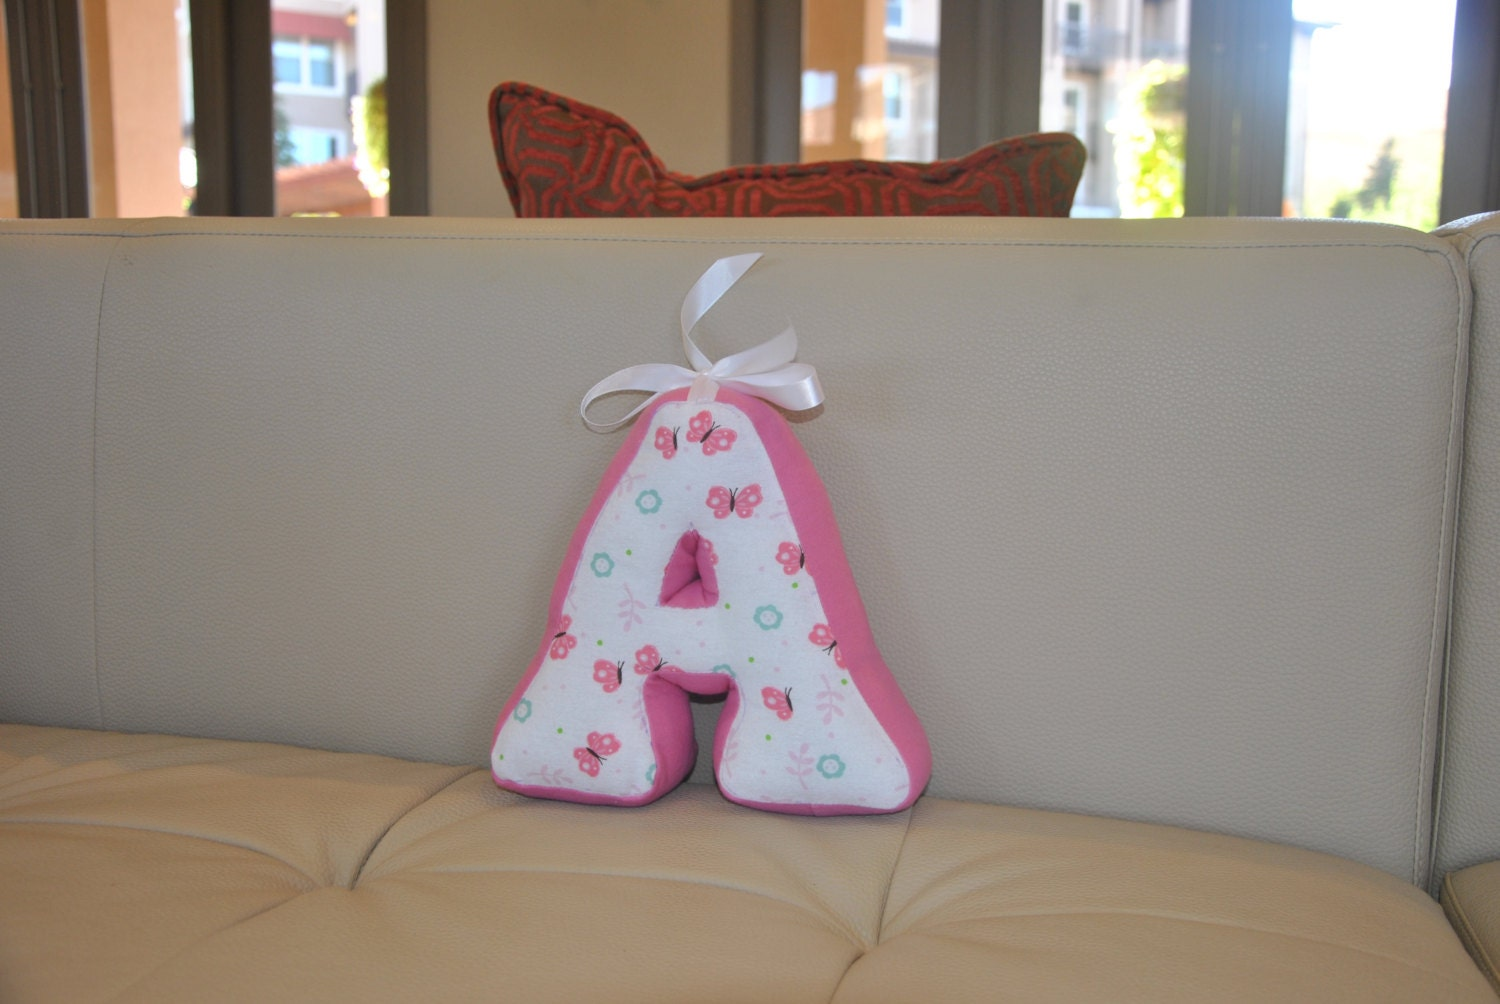 Decorative letter pillow nursery decor kids room decor for Decorative letters for kids room